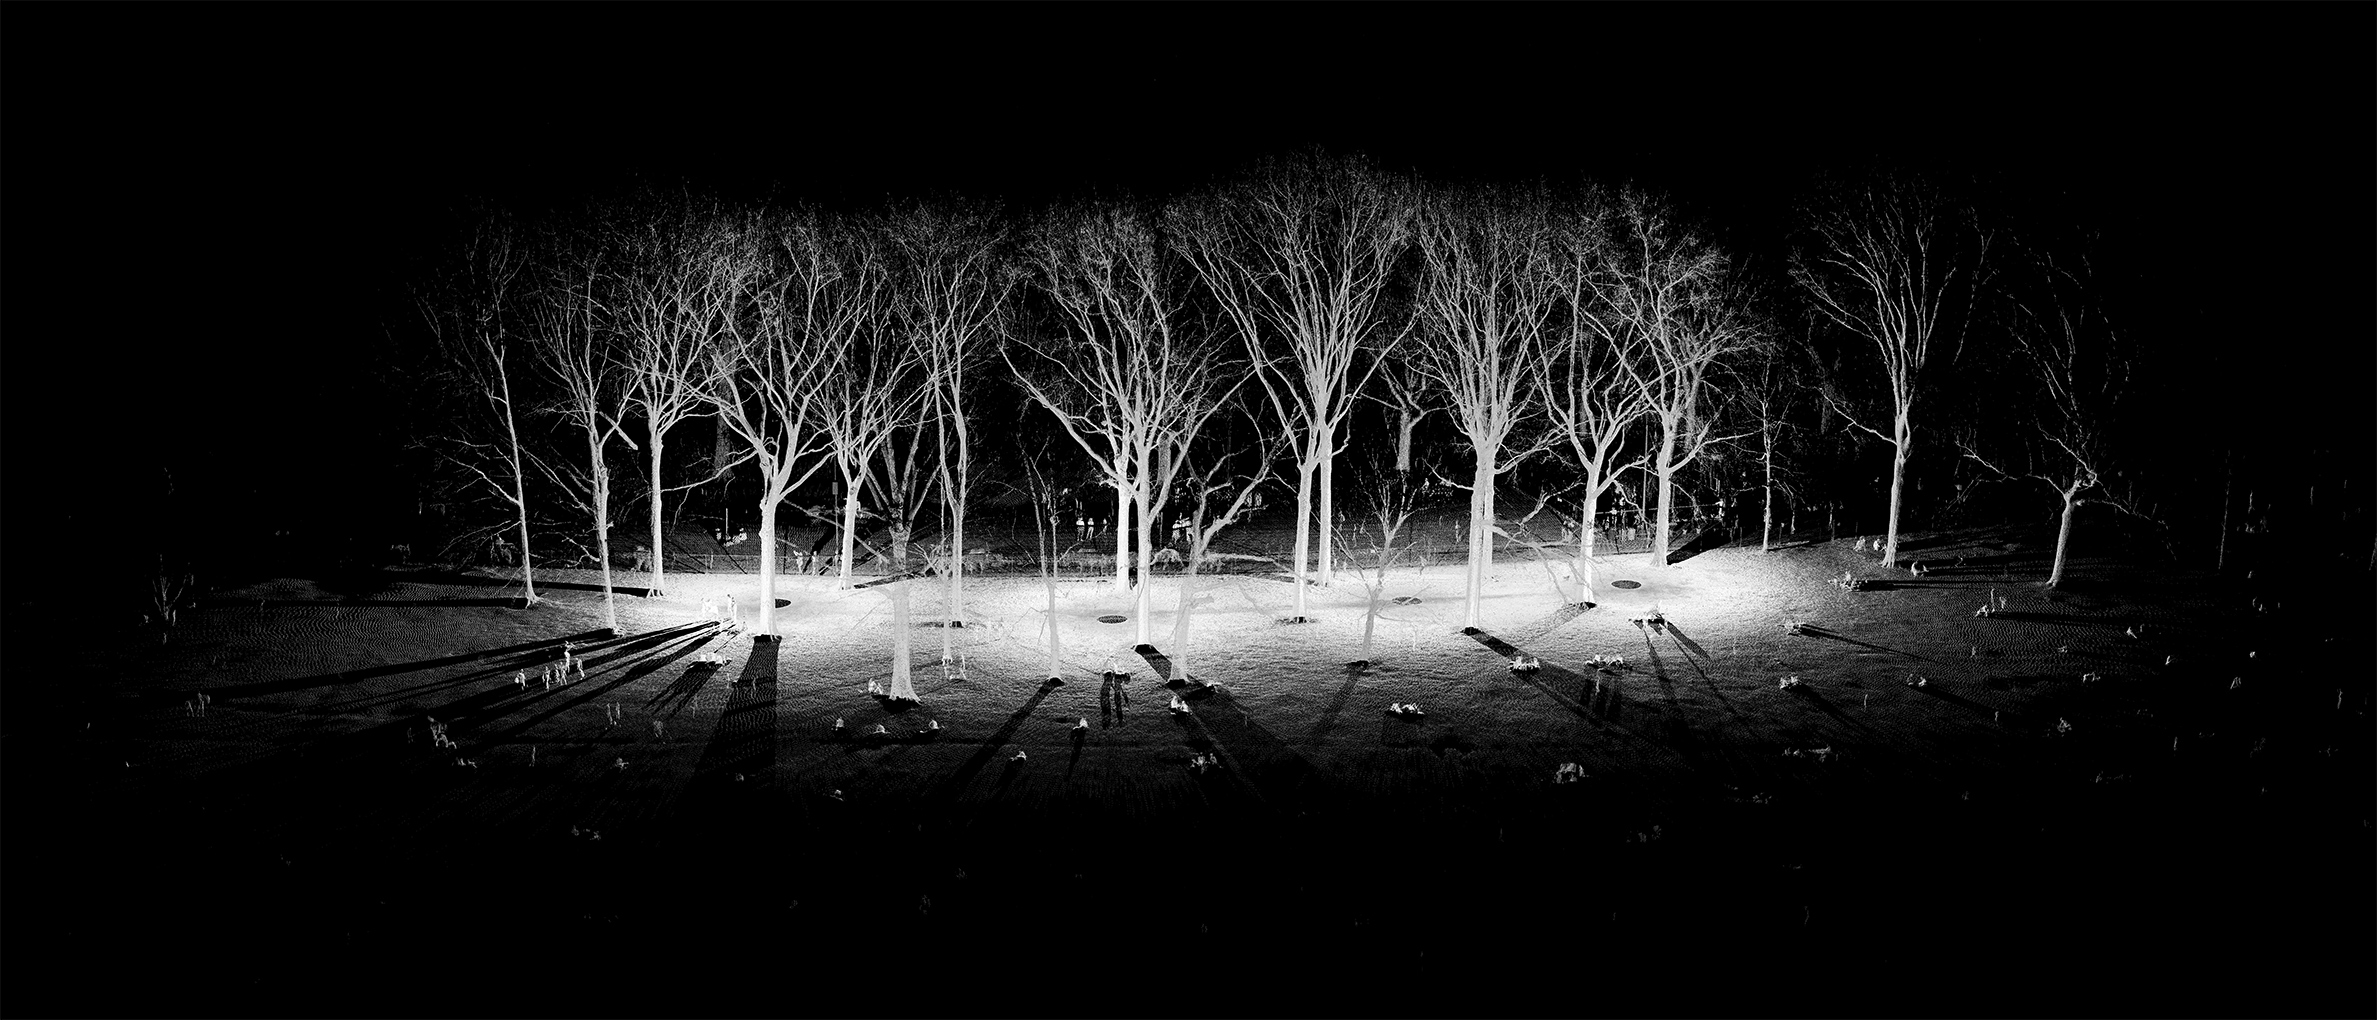 mynd-workshop-central-park-sheep-meadow-trees-8-3D-laser-scanning-point-cloud-new-york.jpg